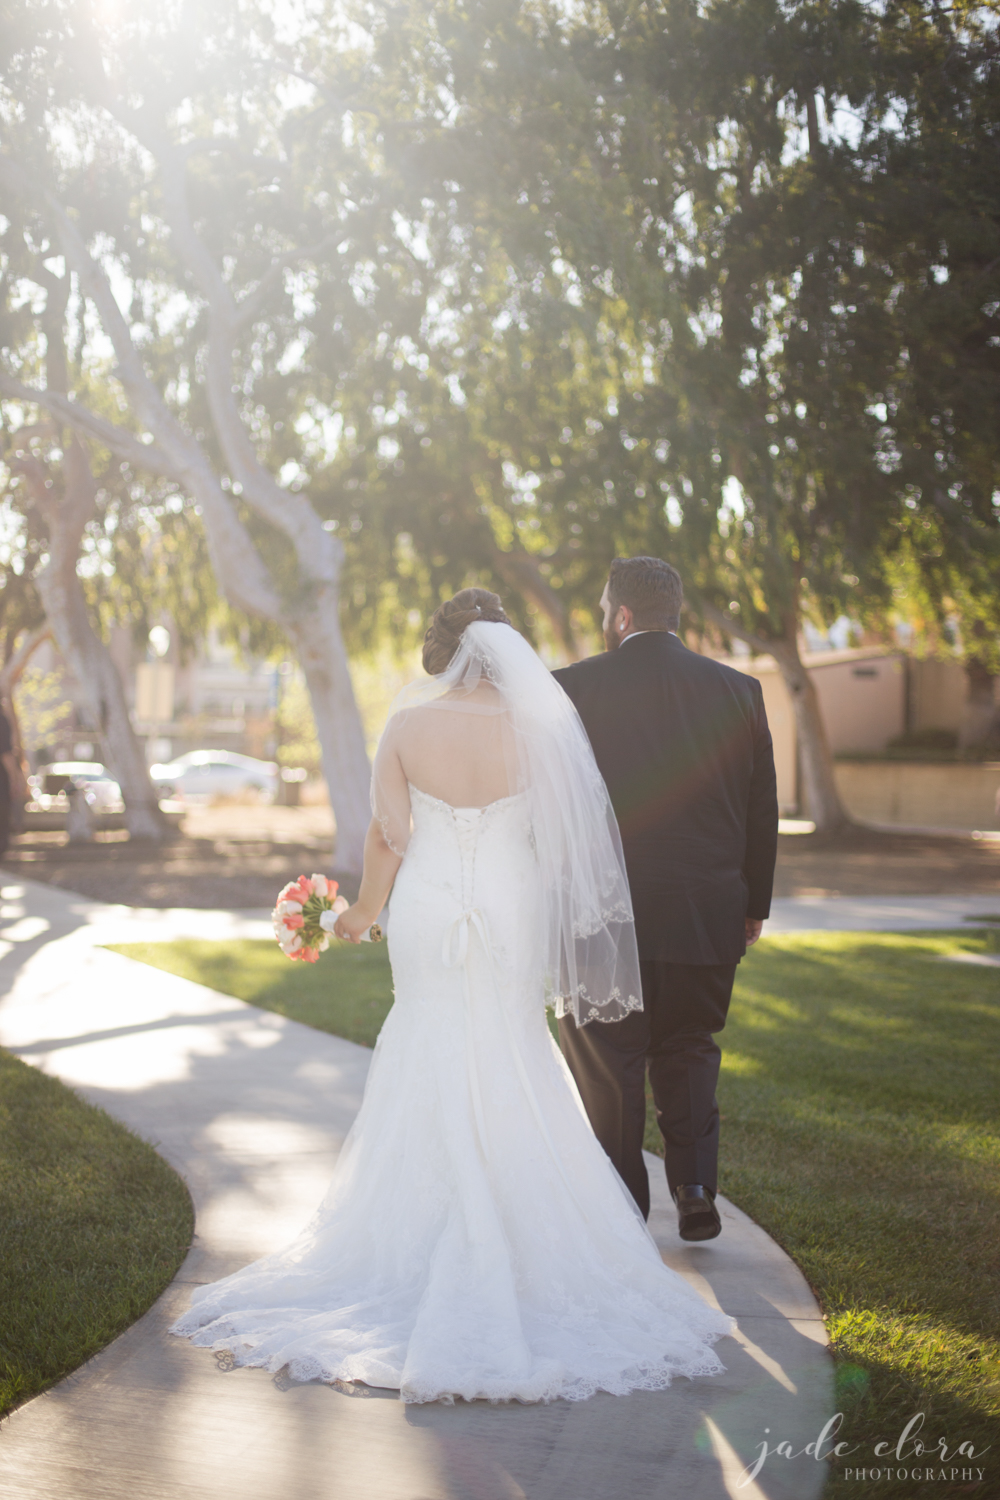 Glendale-Wedding-Photographer-Blog-Jade-Elora-Blog-MGM-18.jpg